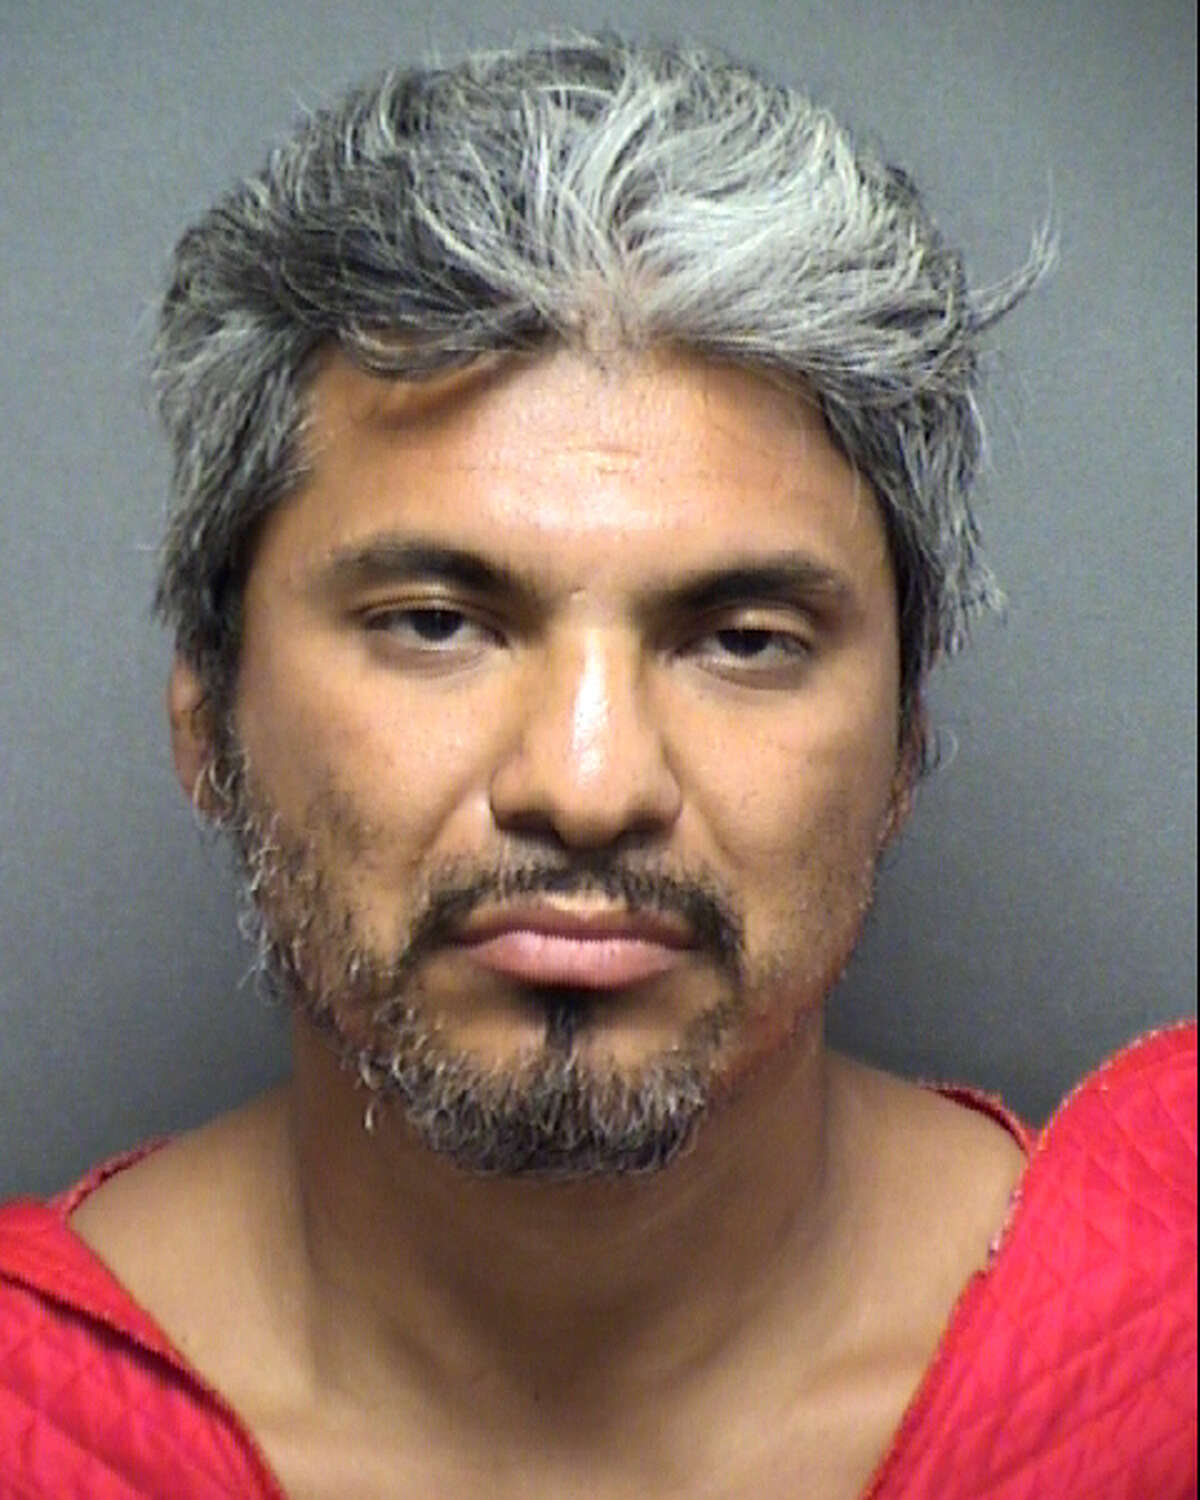 Abel Gonzalez, 41, was charged with aggravated assault with a deadly weapon.